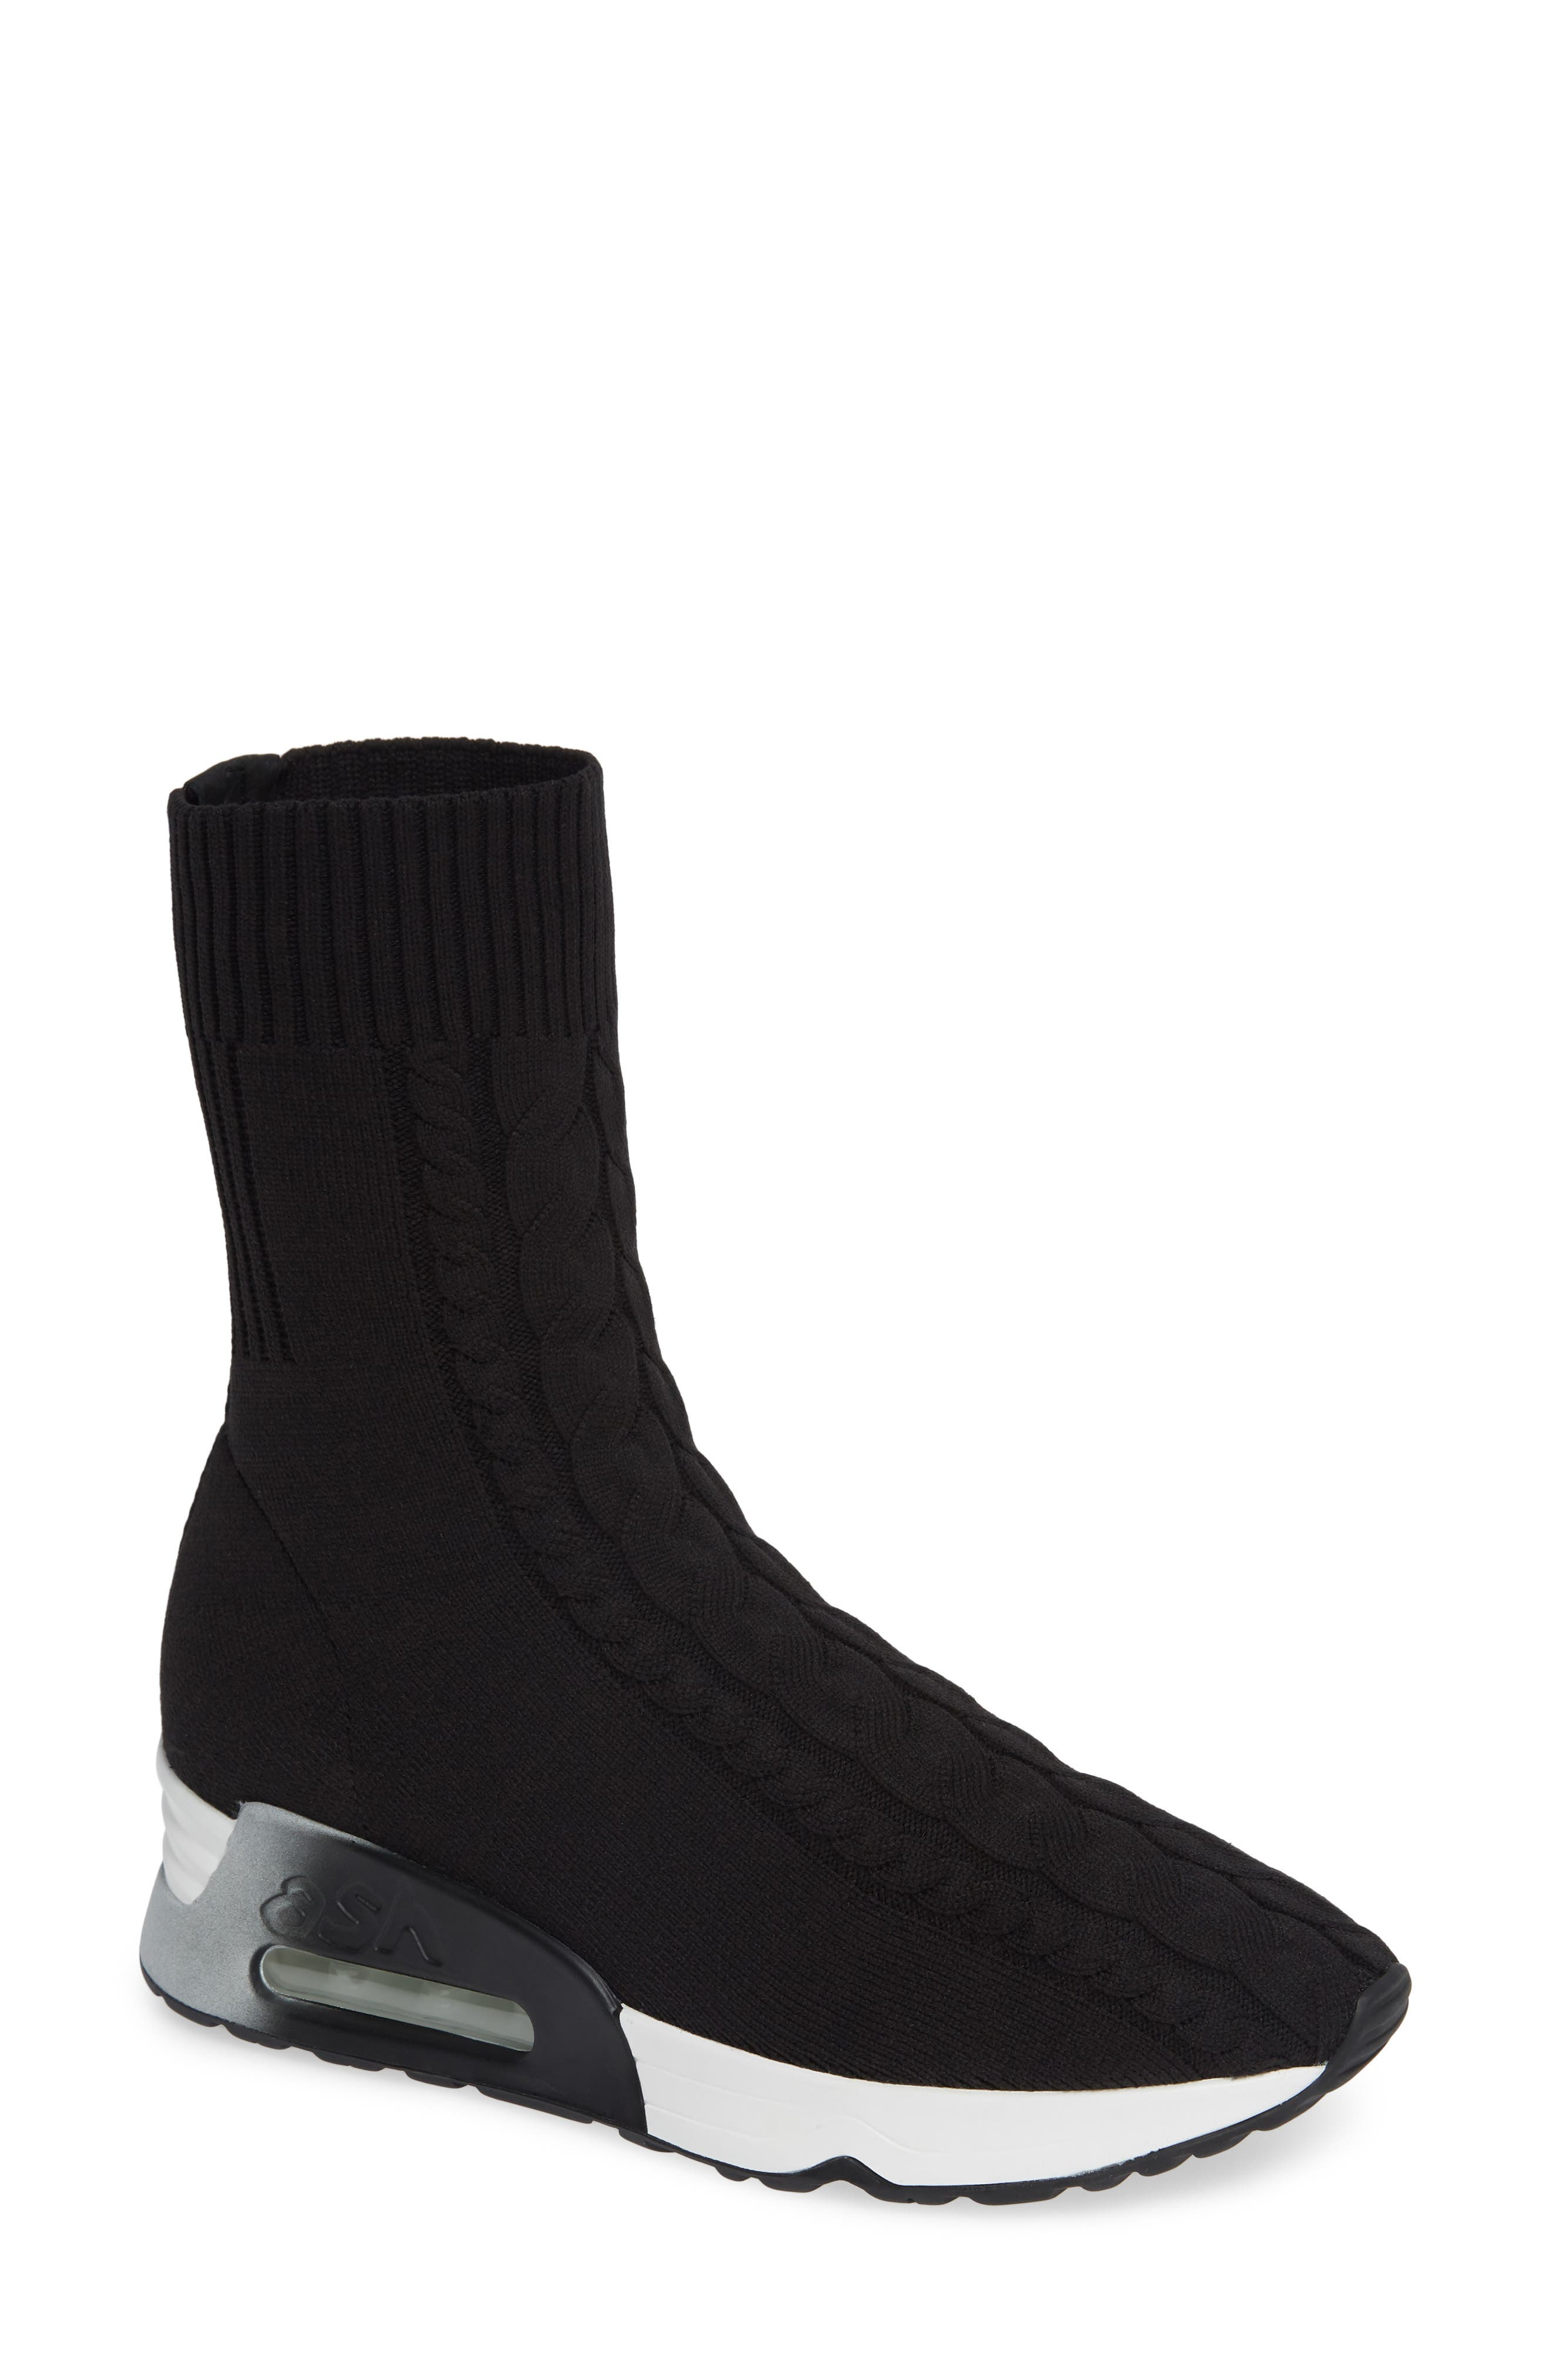 Liv Knit Sneaker Bootie,                         Main,                         color, BLACK